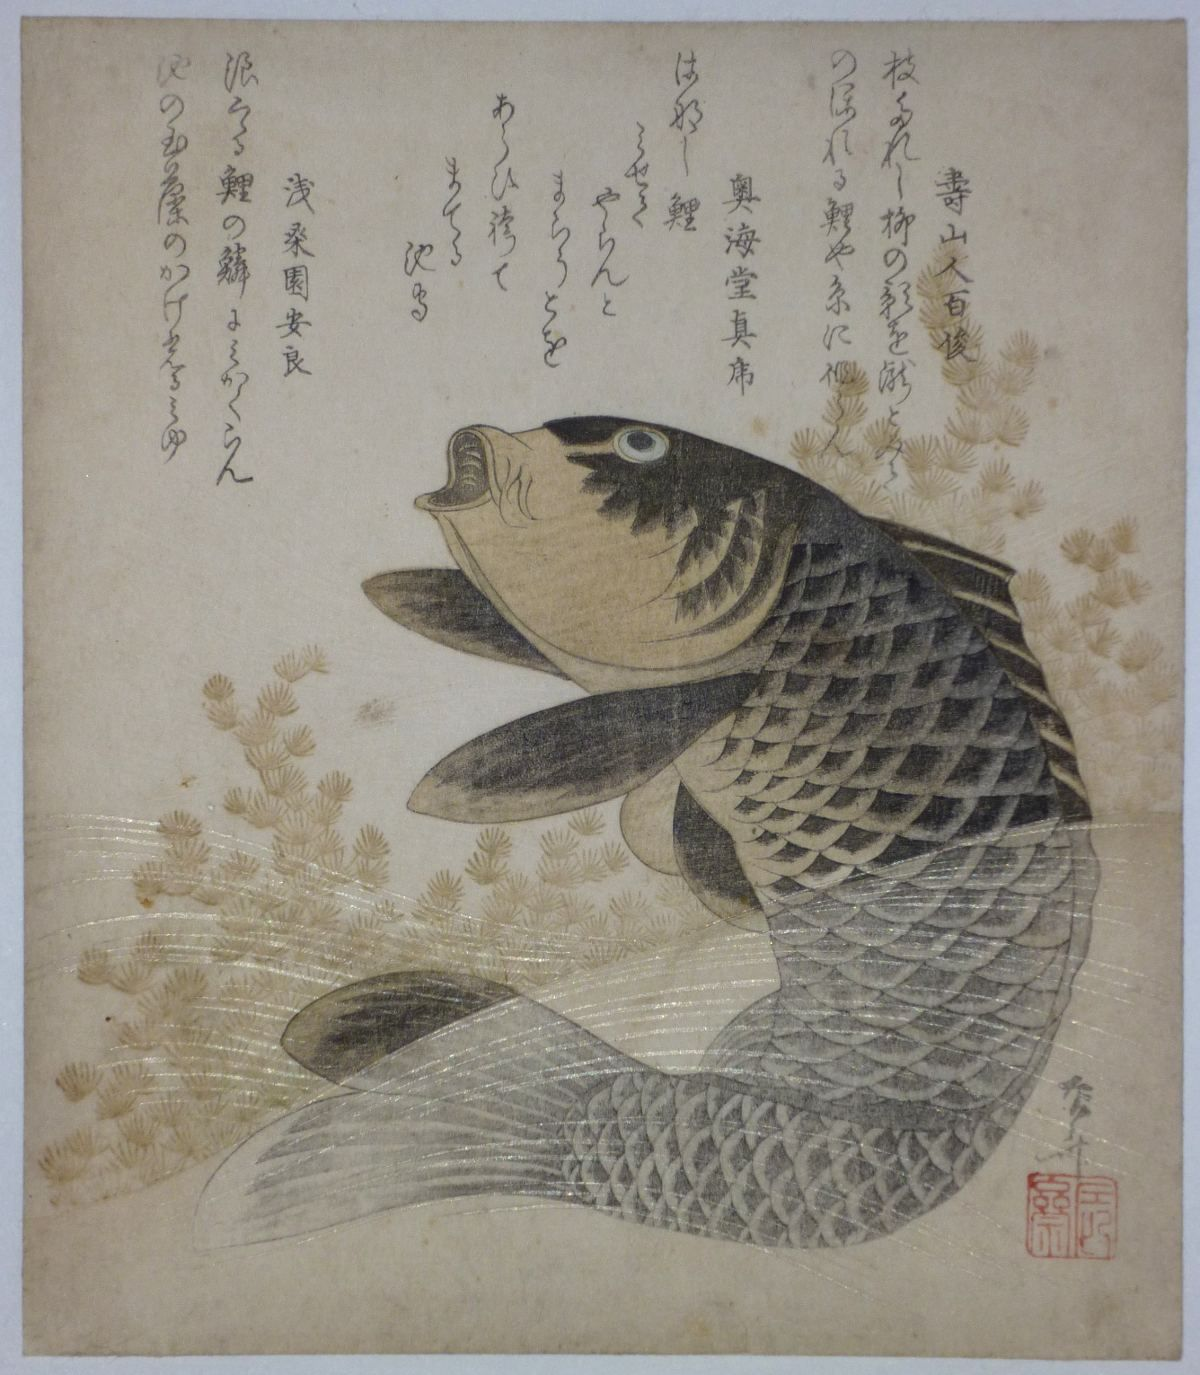 A Rare Surimono Showing A Carp And Water Weeds The Carp Was A